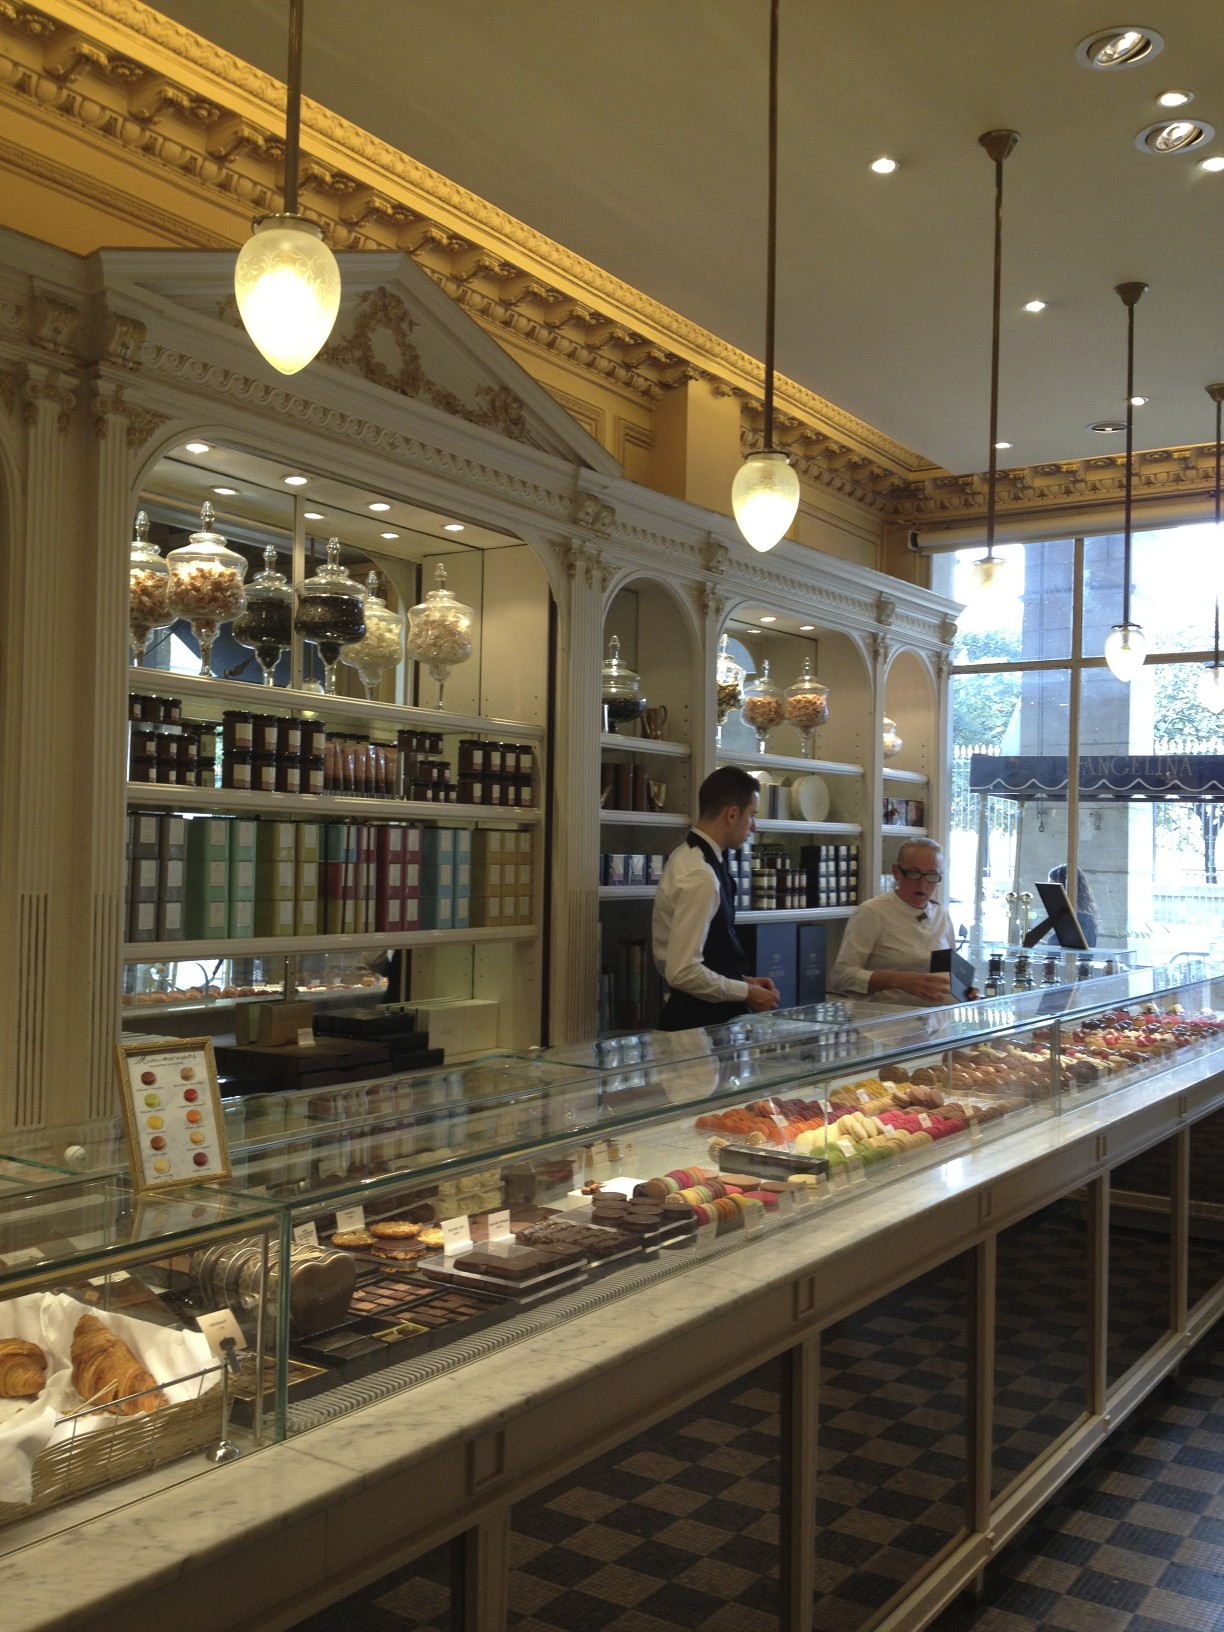 THE FRONT PARLOR IS A PATISSERIE